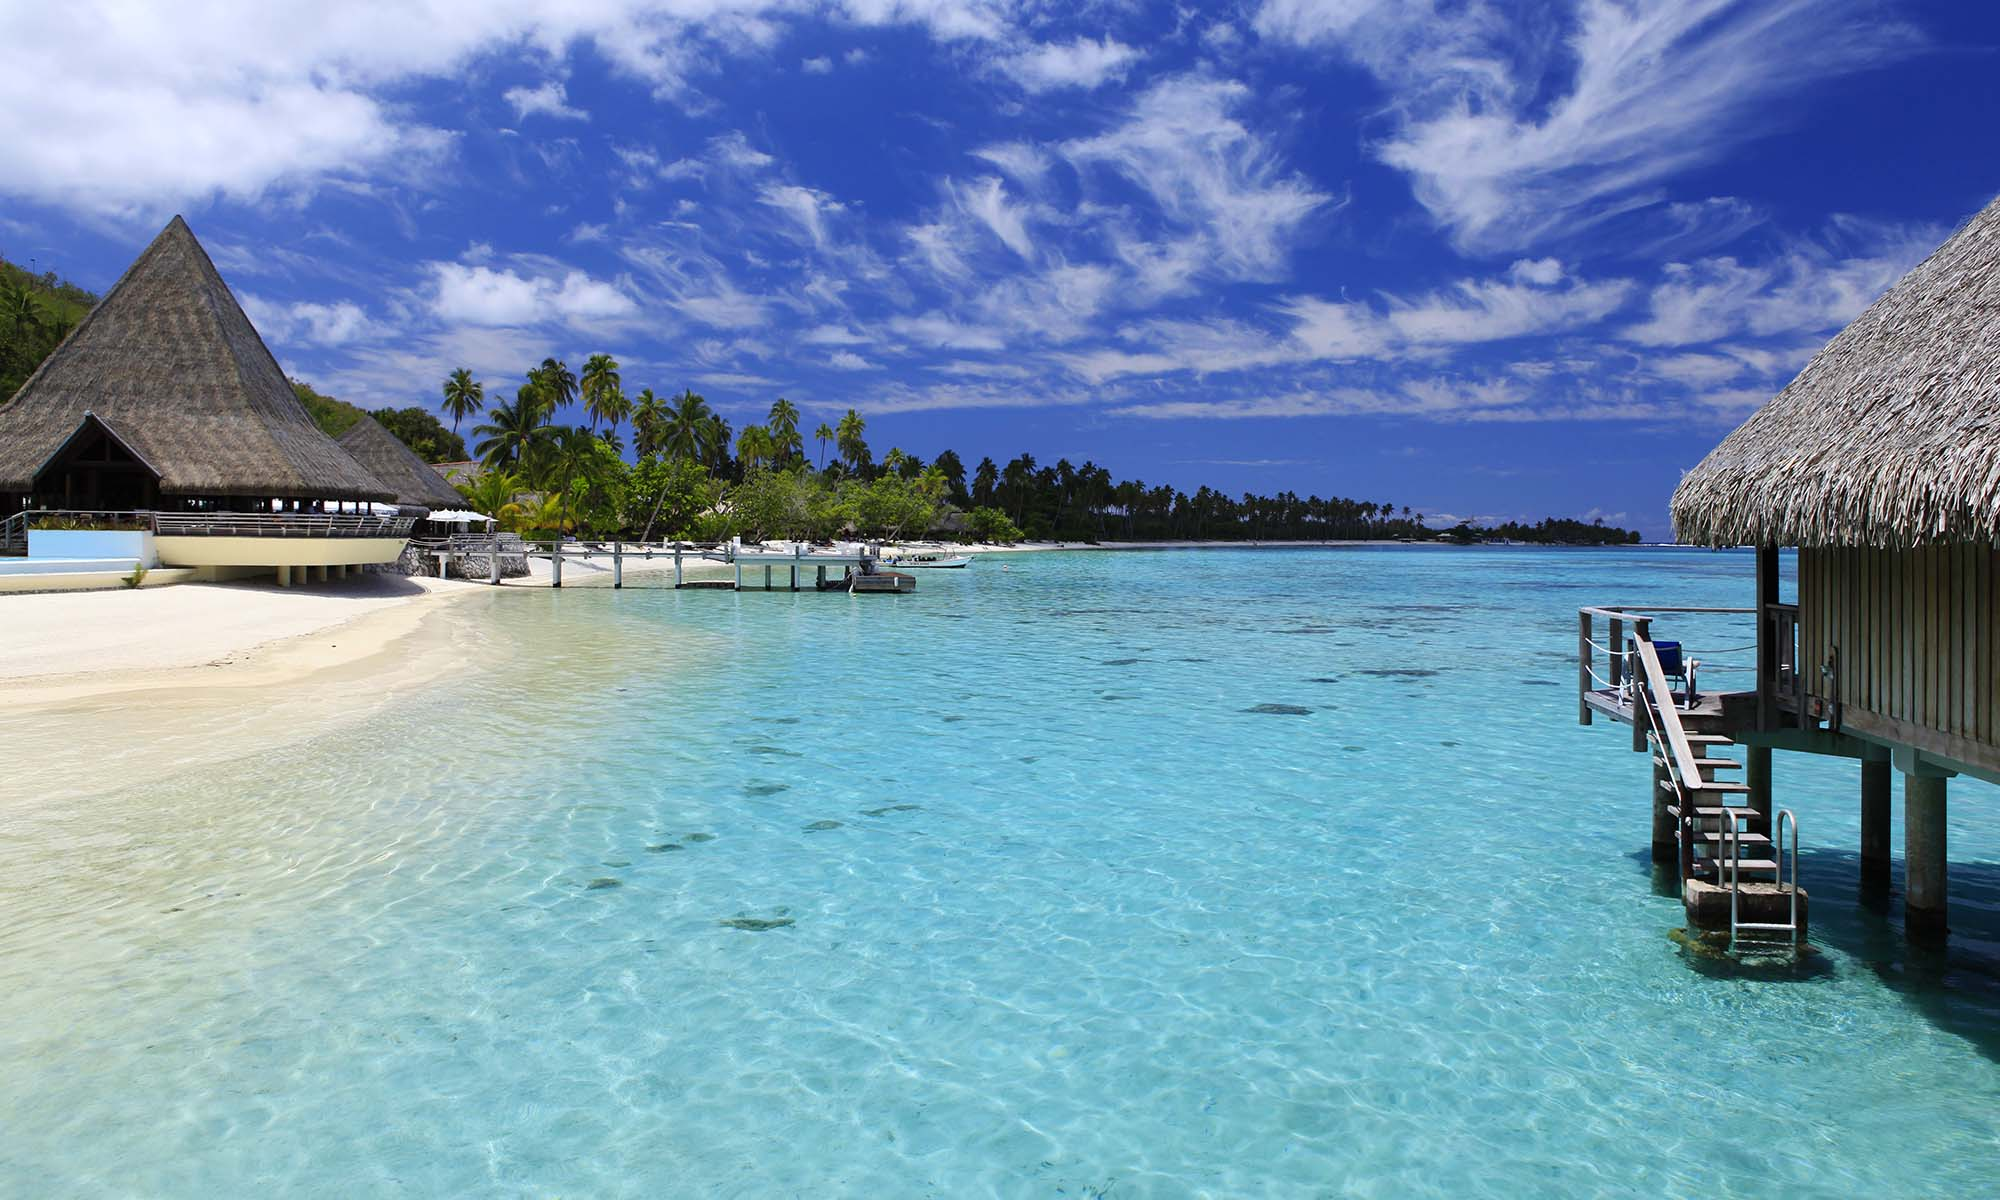 Sofitel Moorea Ia Ora Beach Resort, Beach